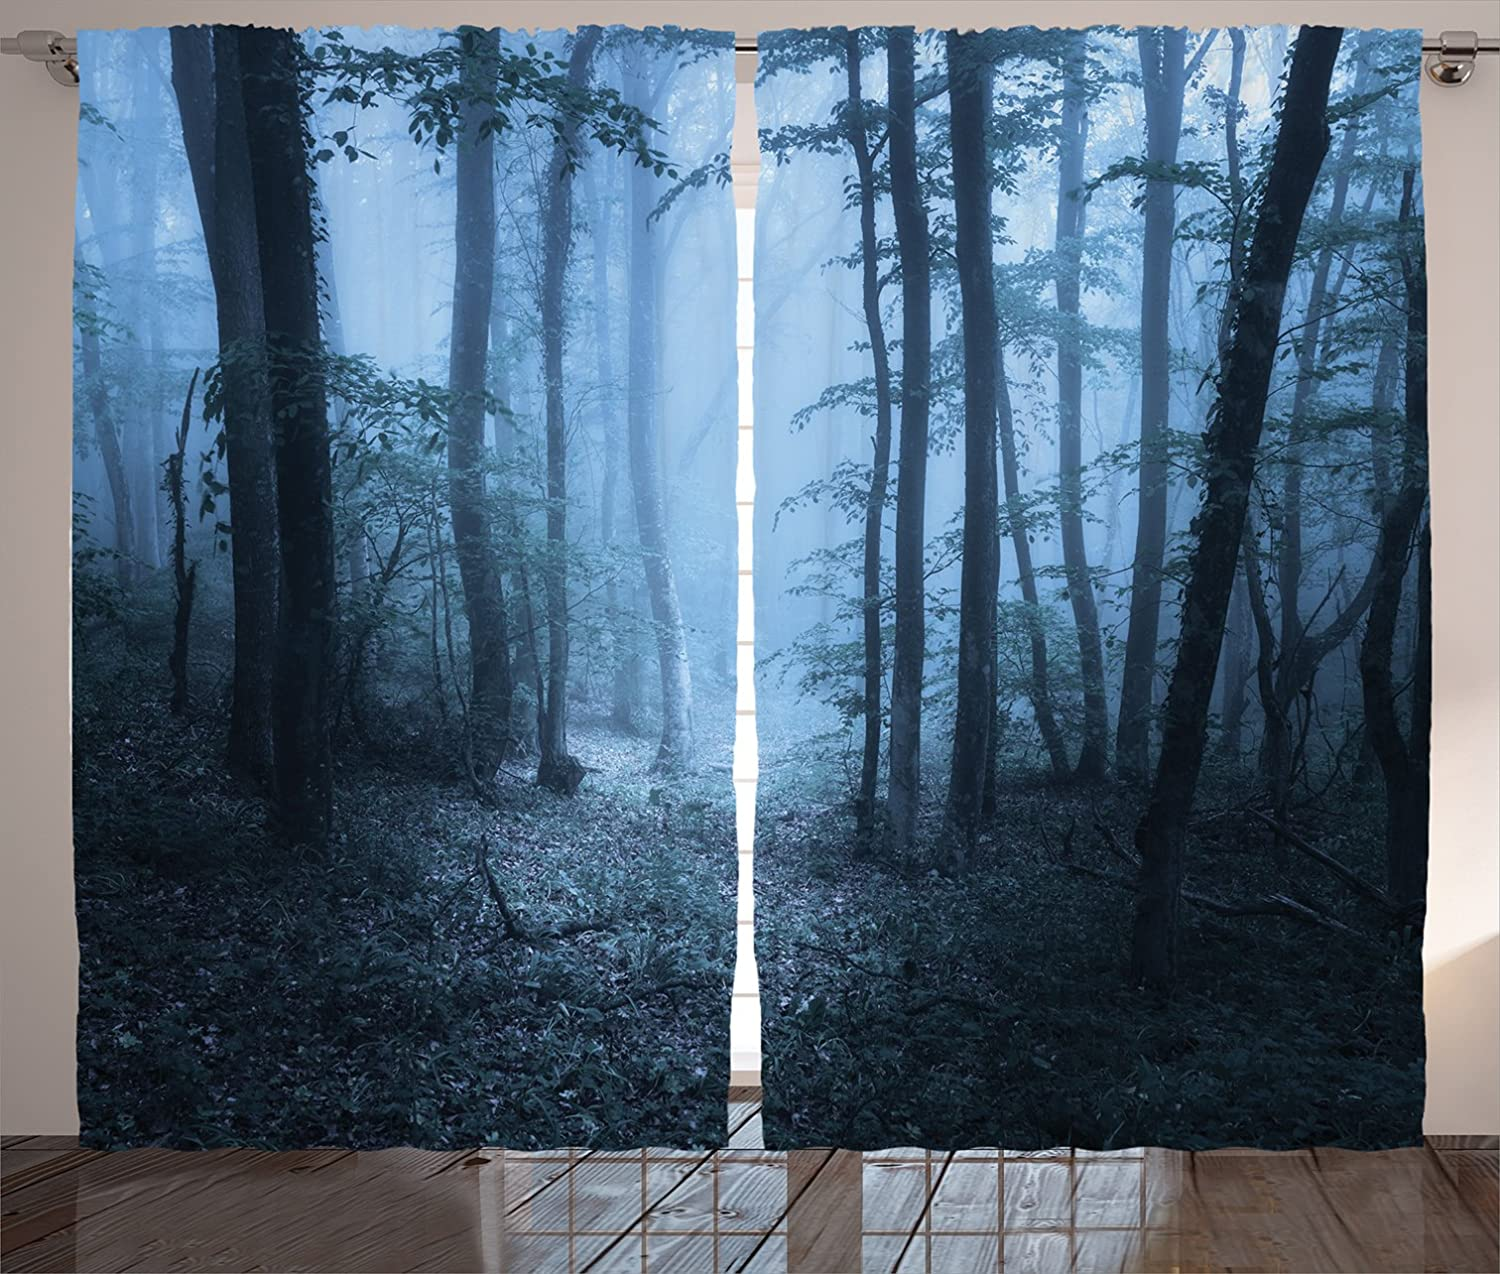 Nature Curtains Snowy Alps Lake Pine Window Drapes 2 Panel Set 108x84 Inches